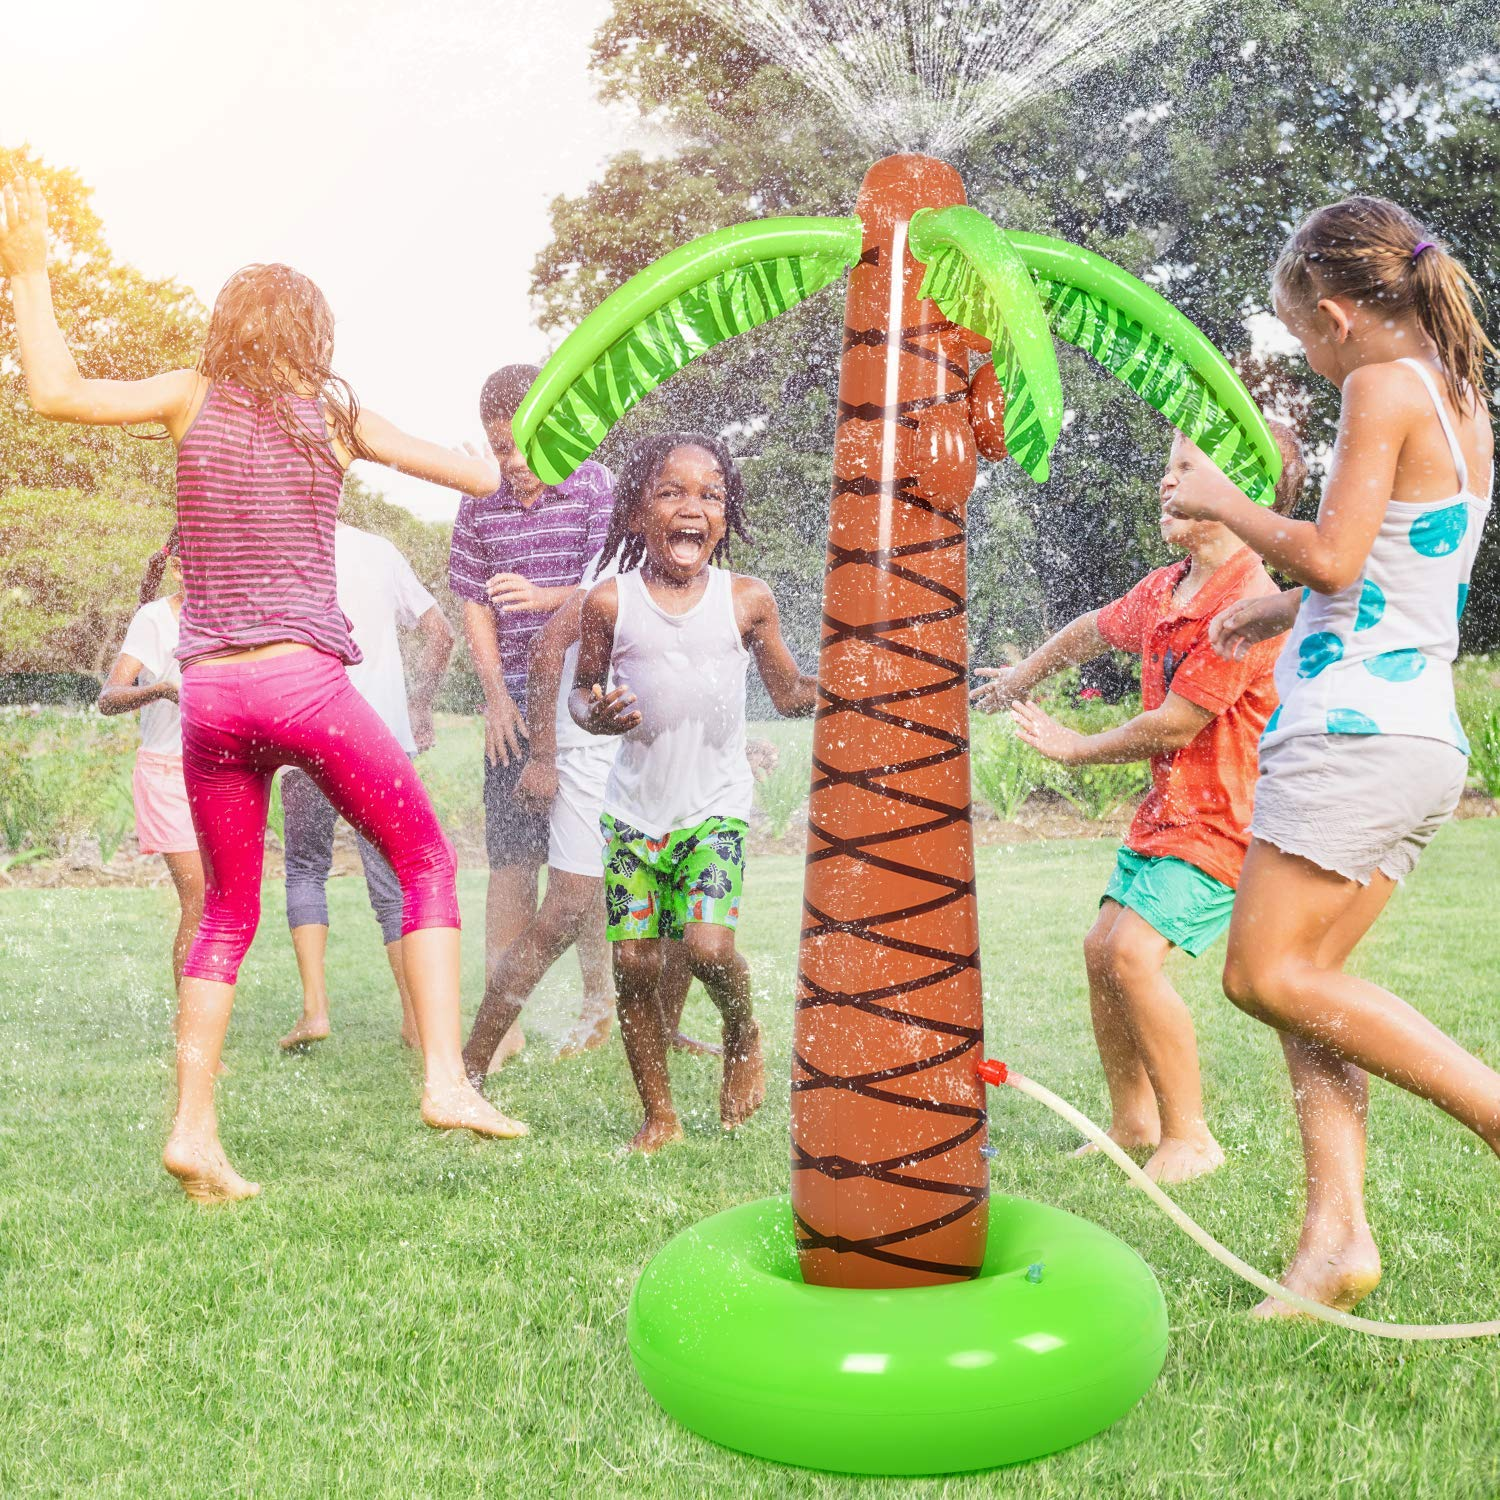 oineke Water Play Sprinkler Inflatable Palm Tree Kids Spray Water Toy Outdoor Party Summer Fun for Backyard Play 61'' by oineke